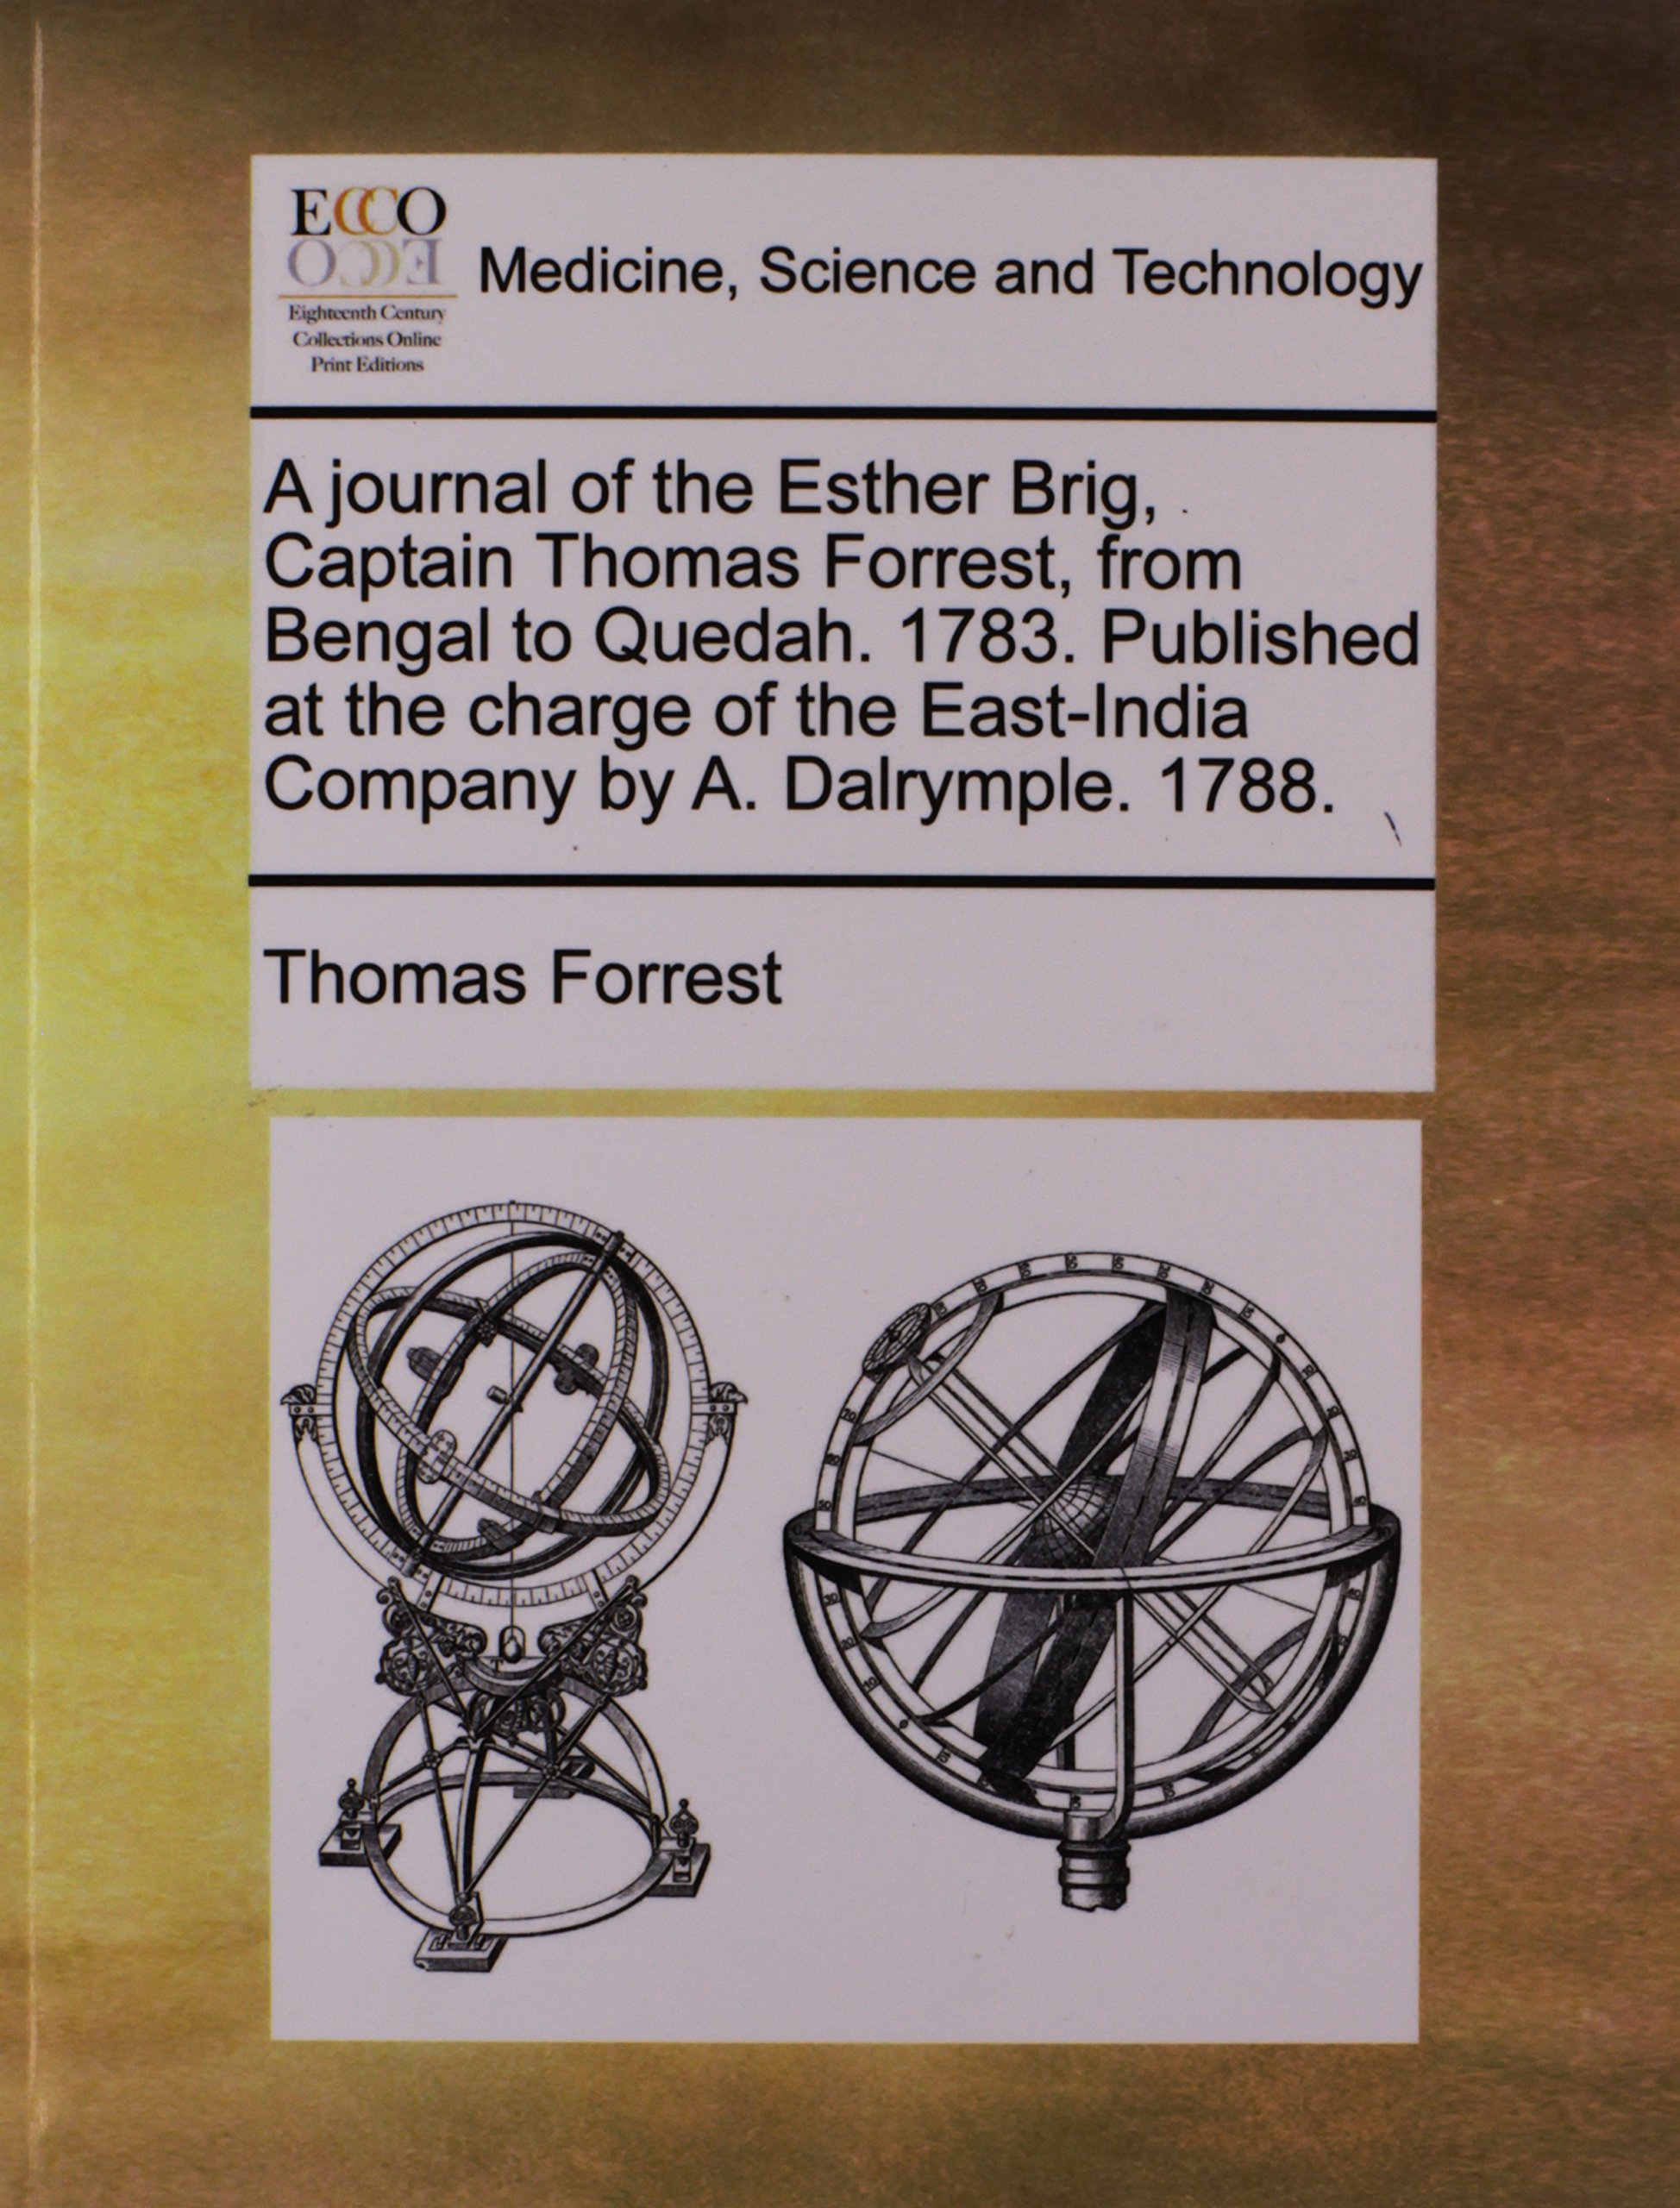 A journal of the Esther Brig, Captain Thomas Forrest, from Bengal to Quedah. 1783. Published at the charge of the East-India Company by A. Dalrymple. 1788. ebook